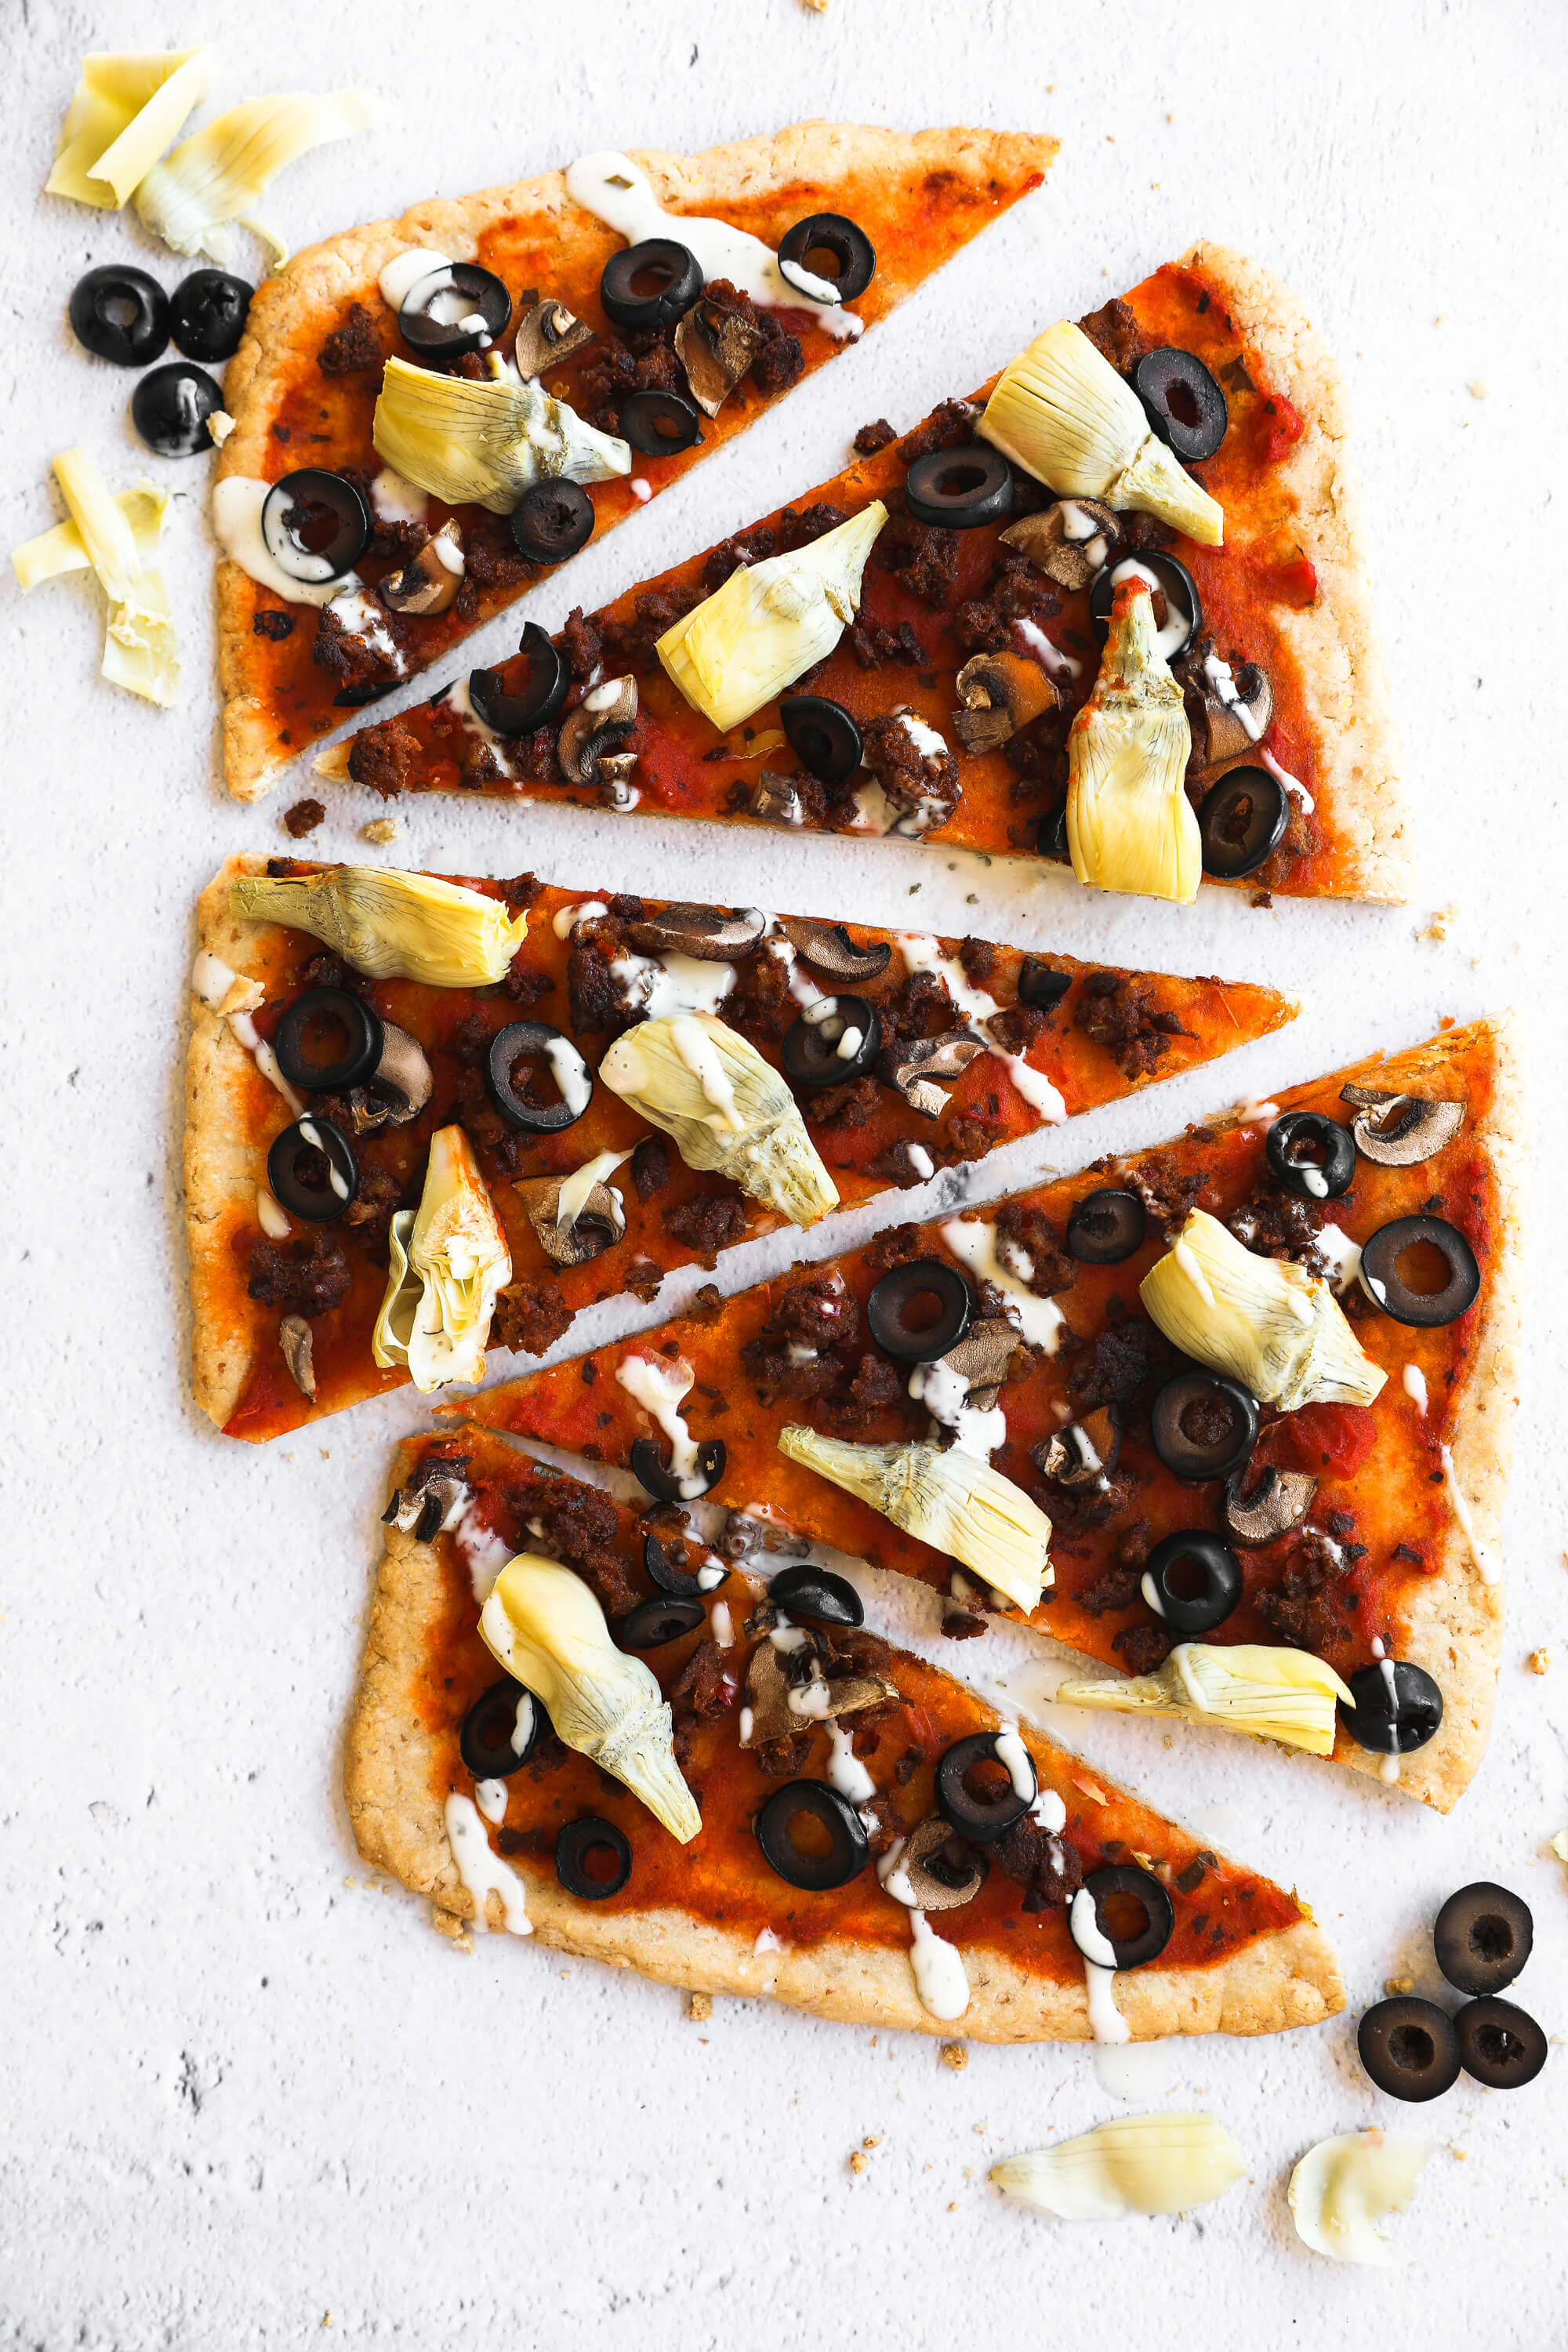 Gluten free flatbread pizza cut into slices and lined up vertically with ranch drizzled on top.